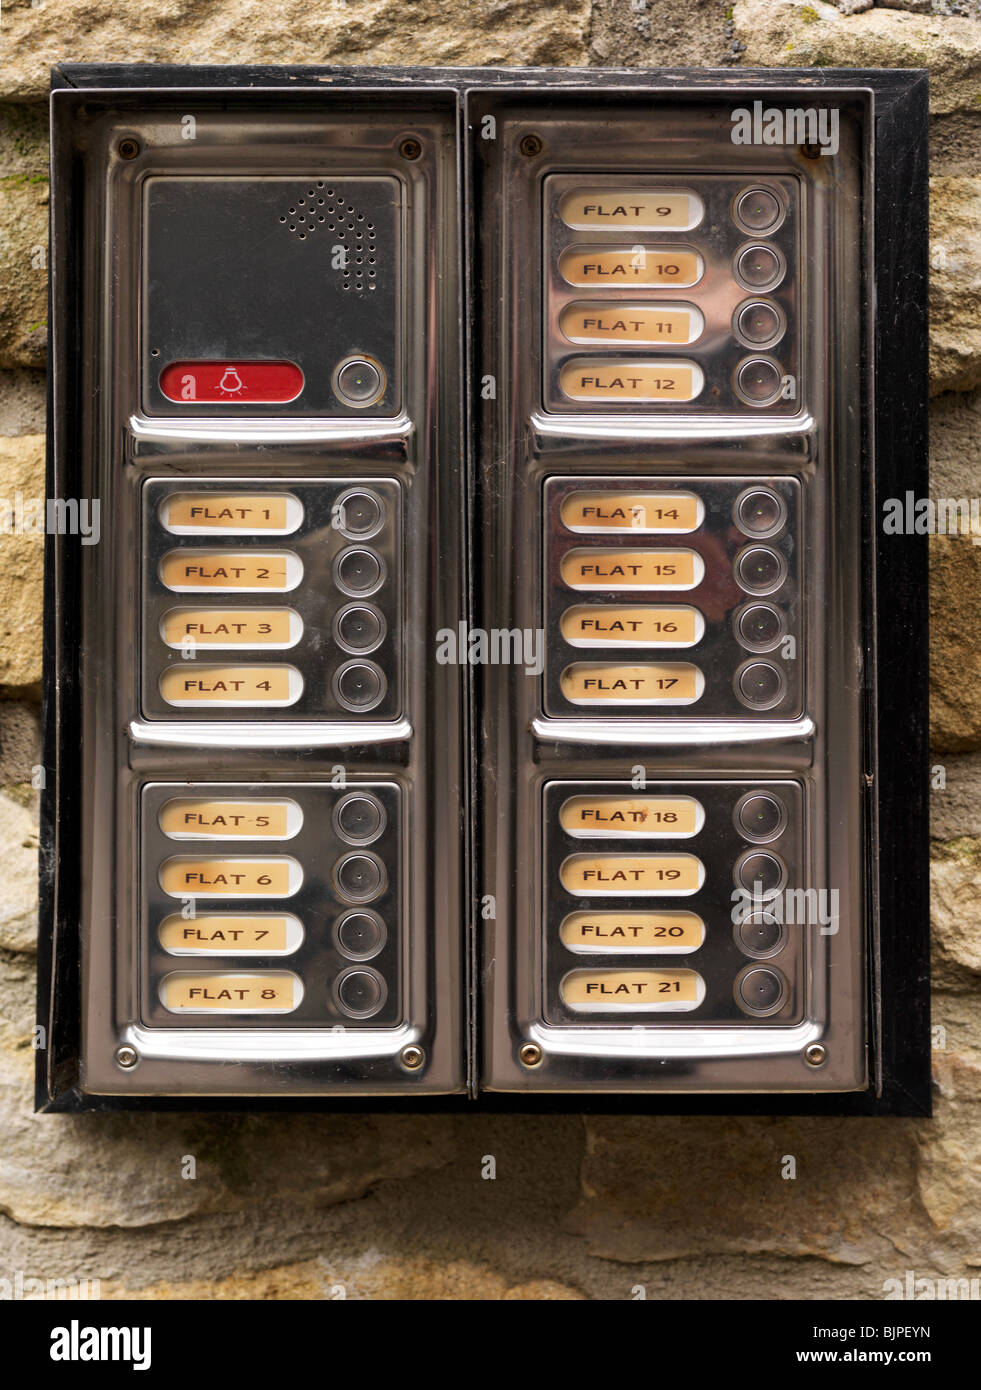 door entry system - Stock Image